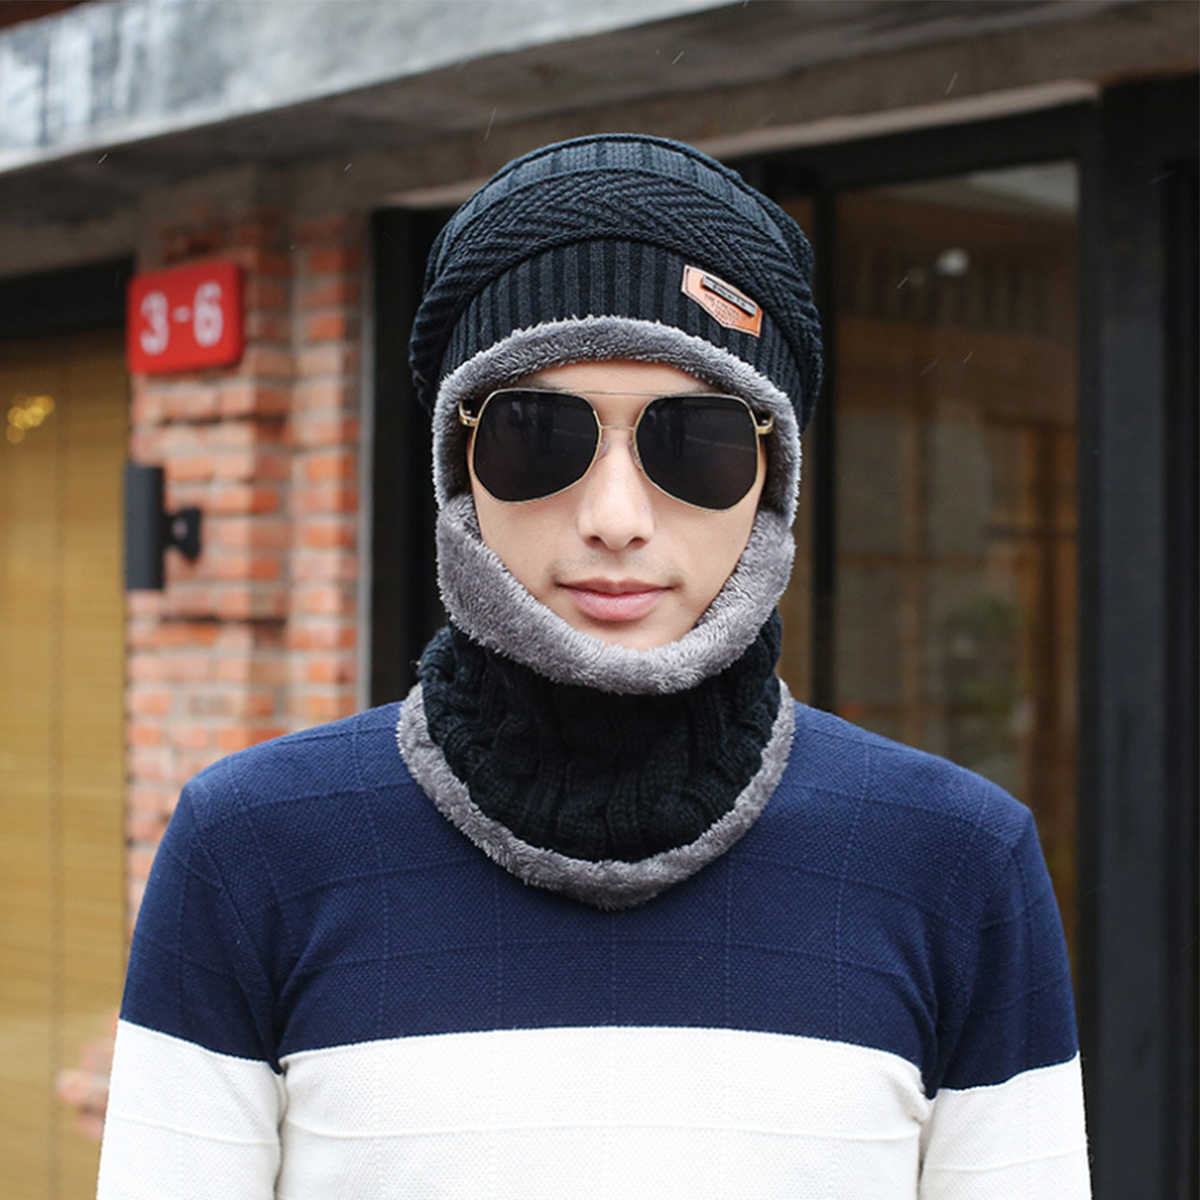 Hiking Caps Hat Knit Hat+Bib Unisex for Men Women Fashion Stretch Cable Knit Lined Thick Warm Winter Wool Slouchy Beanie Cap